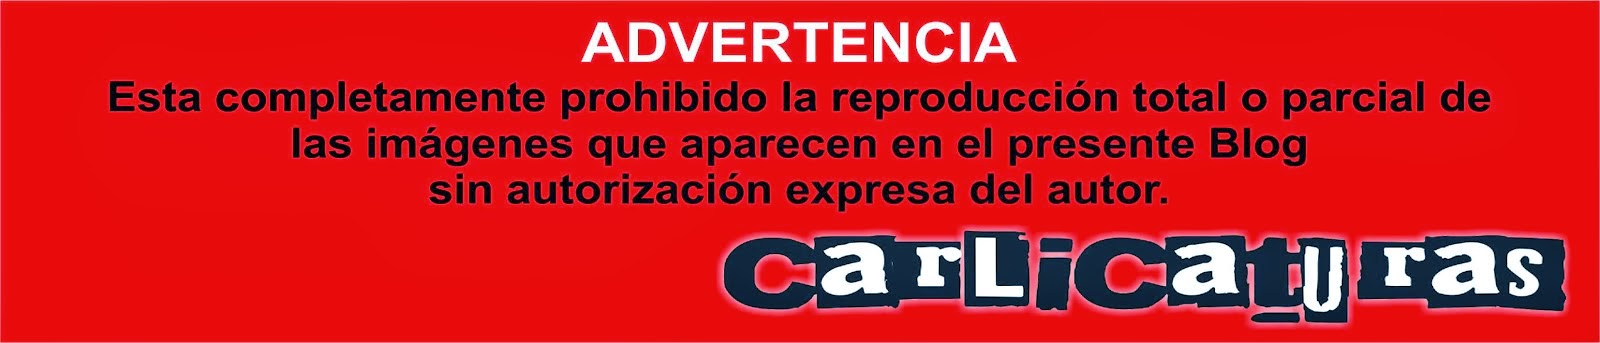 ADVERTENCIA CARLICATURAS